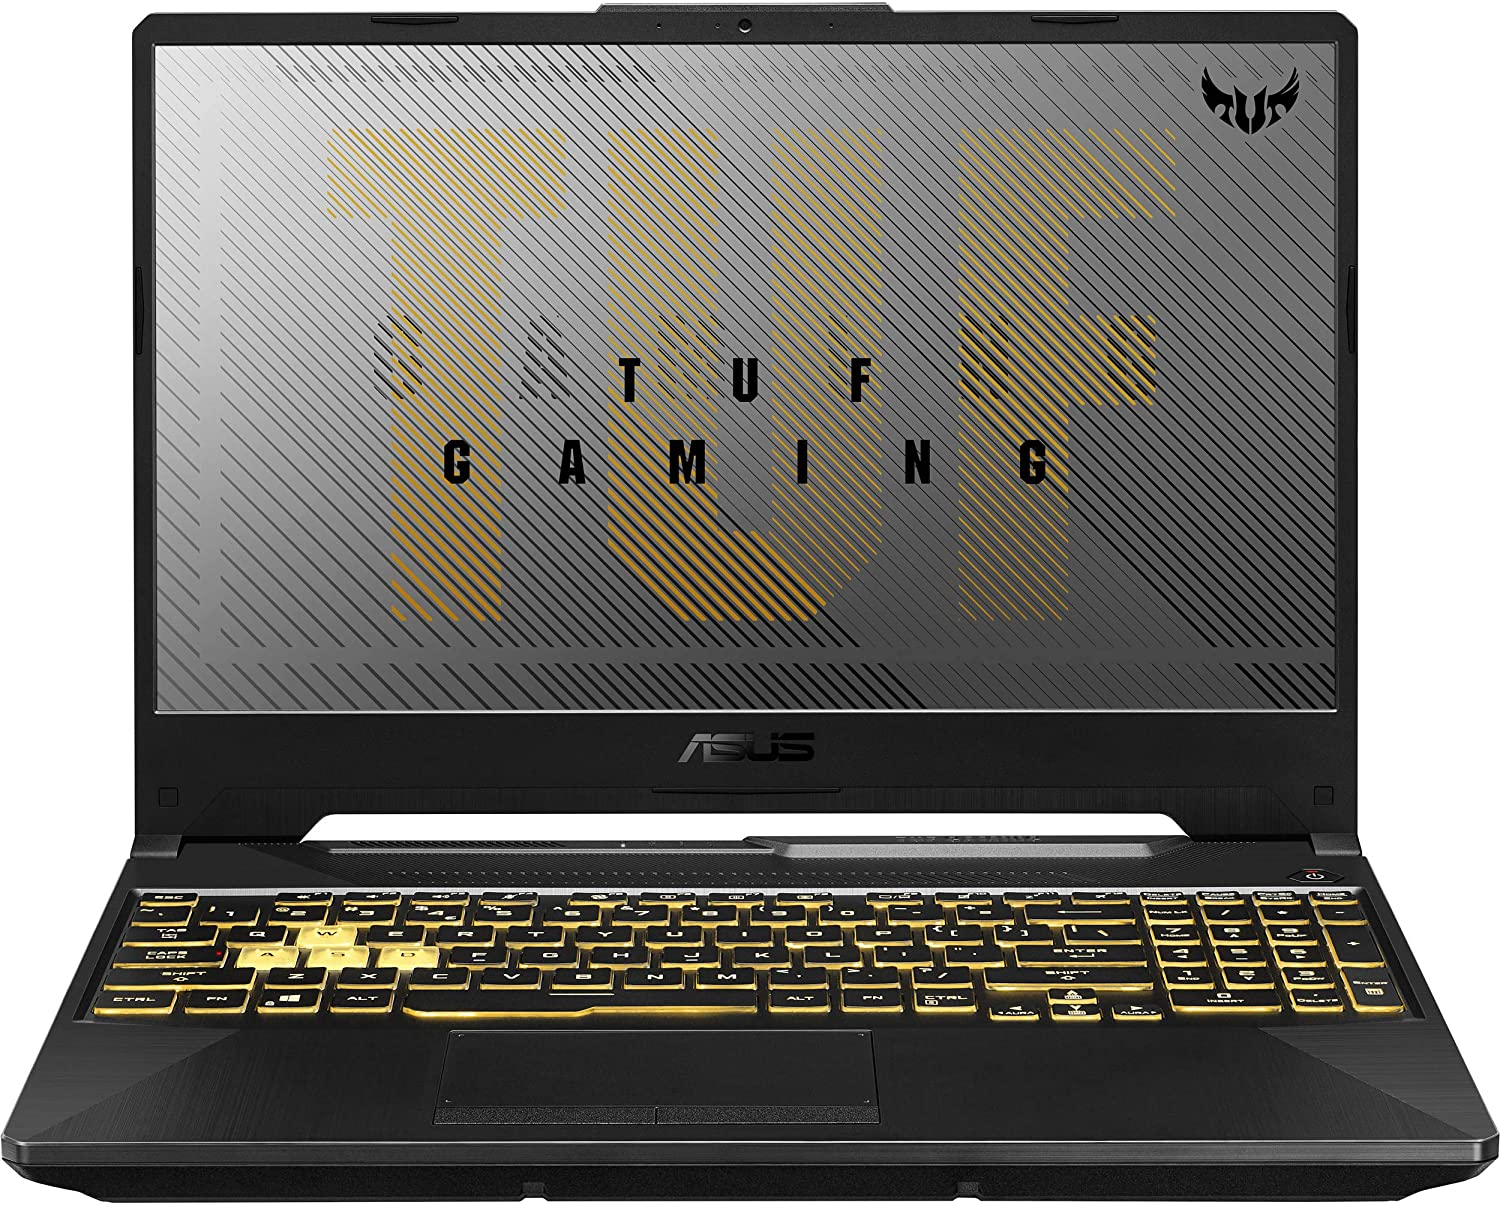 "ASUS TUF VR Ready Gaming Laptop, 15.6"" IPS FHD, AMD Ryzen 7-4800H Octa-Core up to 4.20 GHz, NVIDIA RTX 2060, 8GB RAM, 512GB SSD, RGB Backlit KB, RJ-45 Ethernet, Win 10"